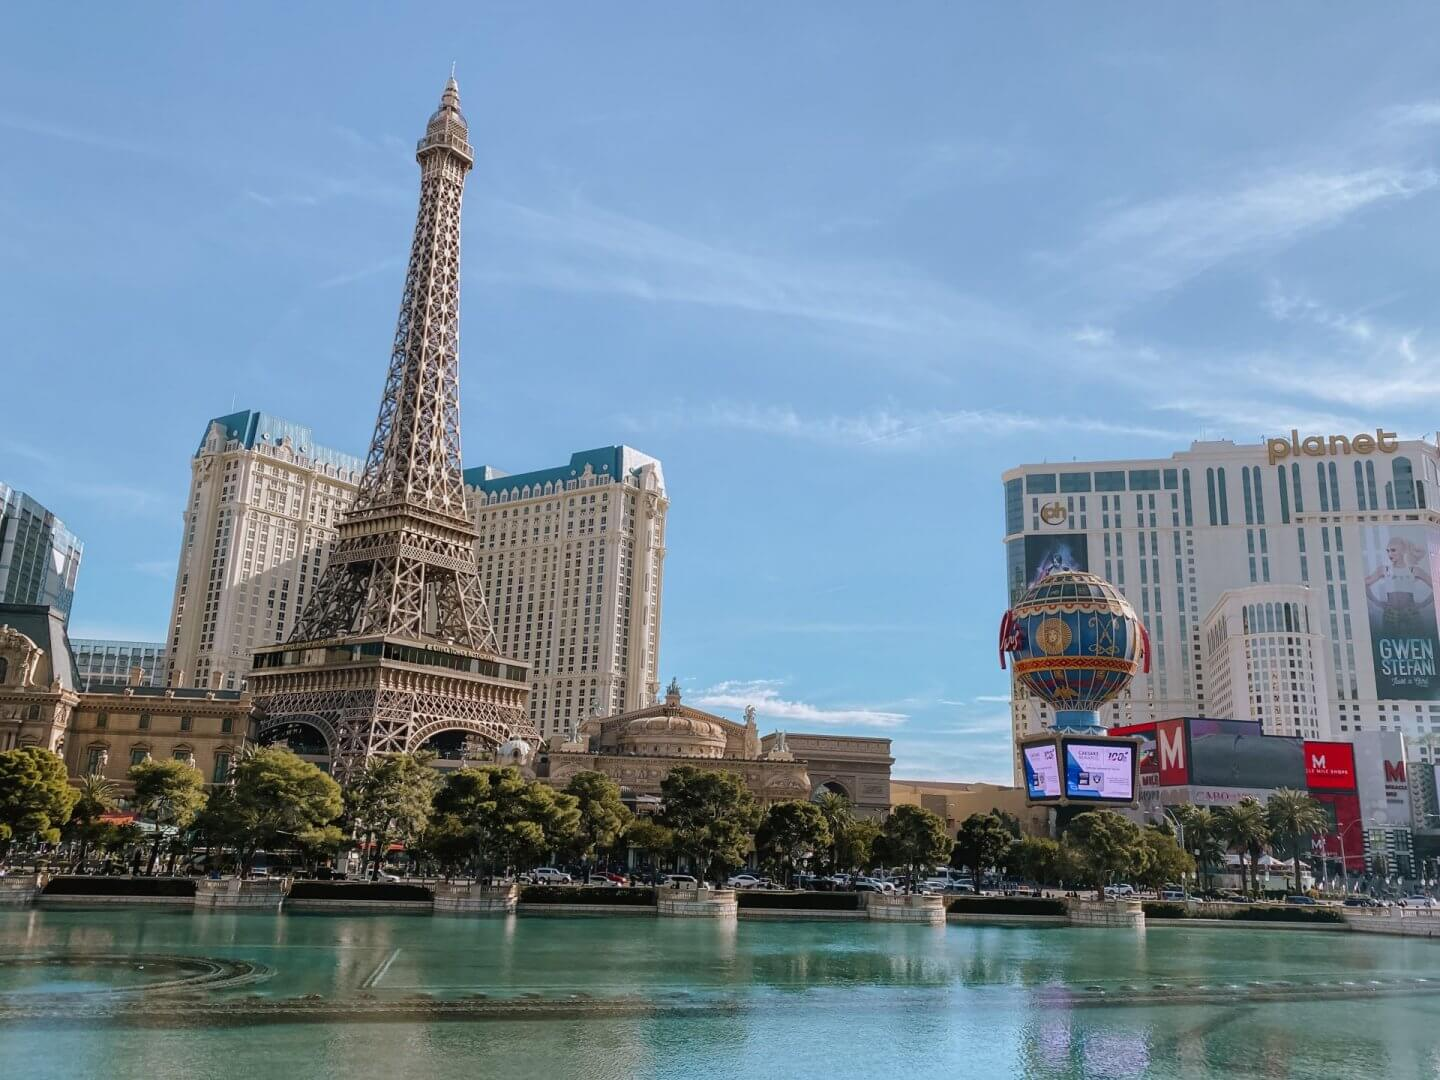 image of eiffel tower on the las vegas strip